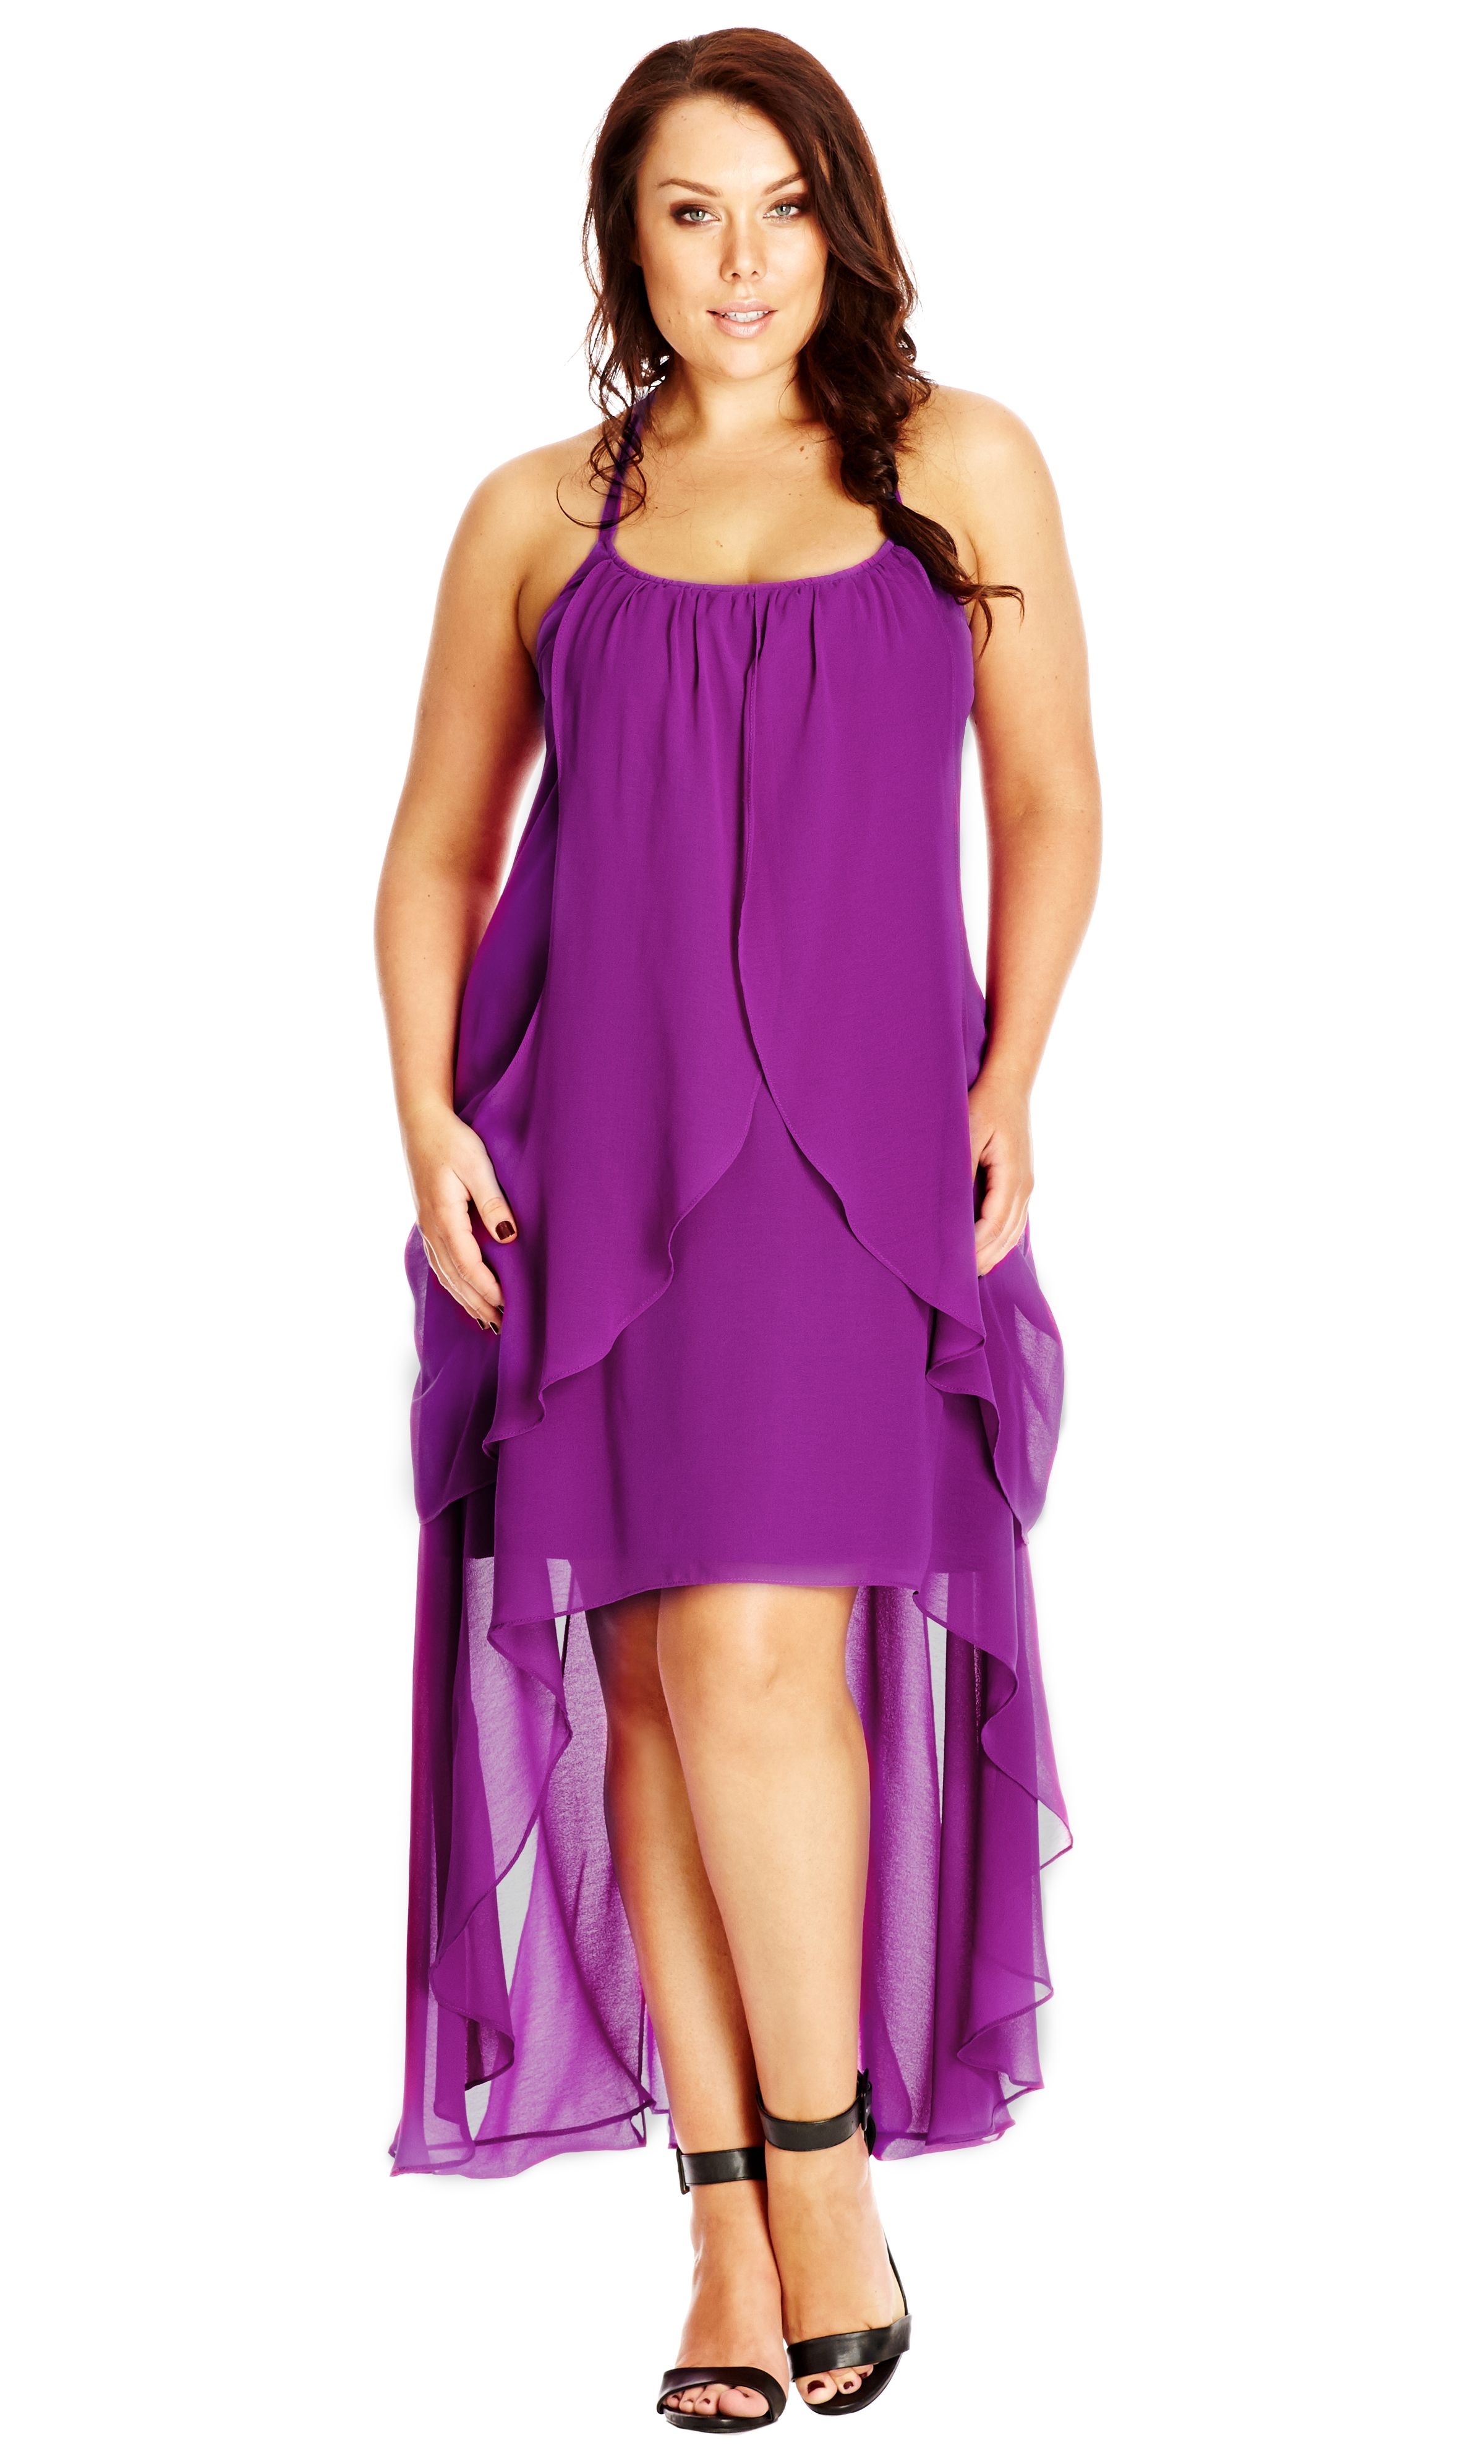 7b663616454 City Chic Drape Goddess Dress - Orchid - Women s Plus Size Fashion City  Chic - City Chic Your Leading Plus Size Fashion Destination  citychic ...